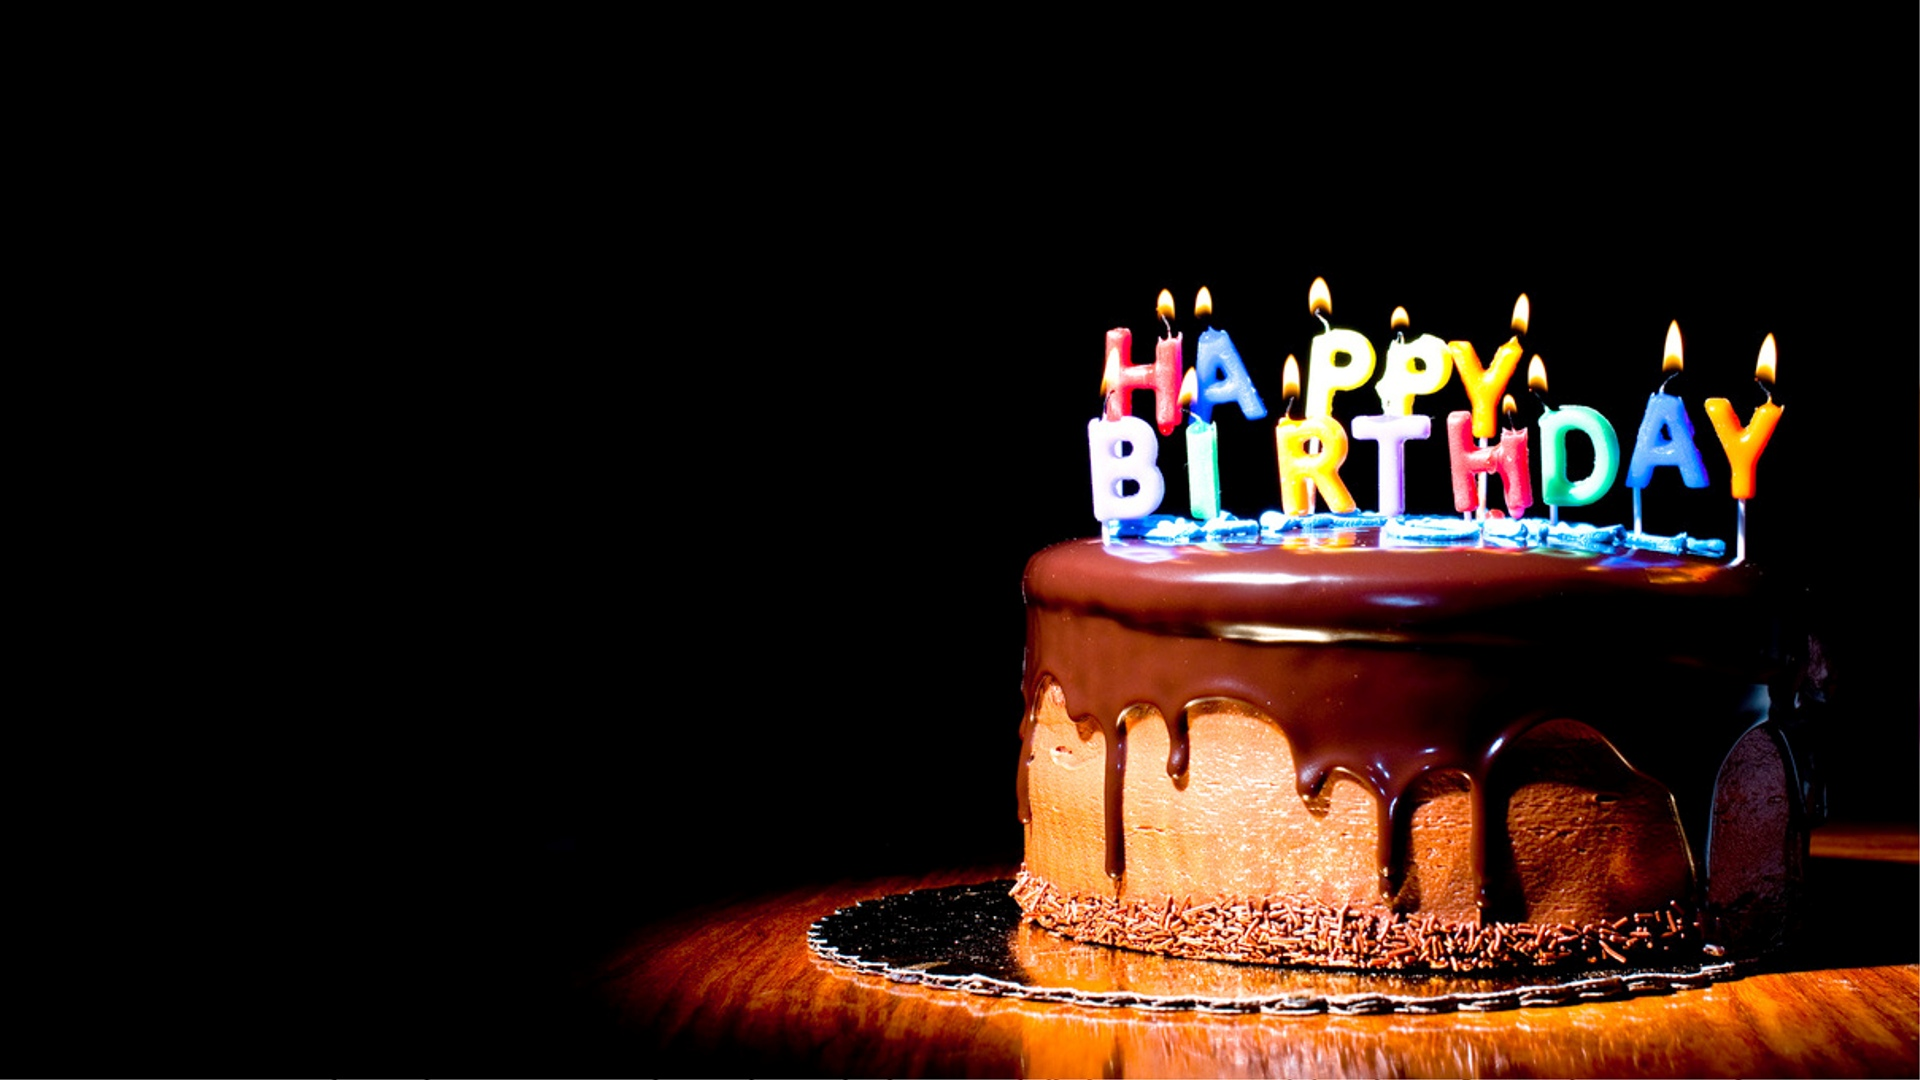 birth day hd images ; birthday-cakes-wallpaper-4